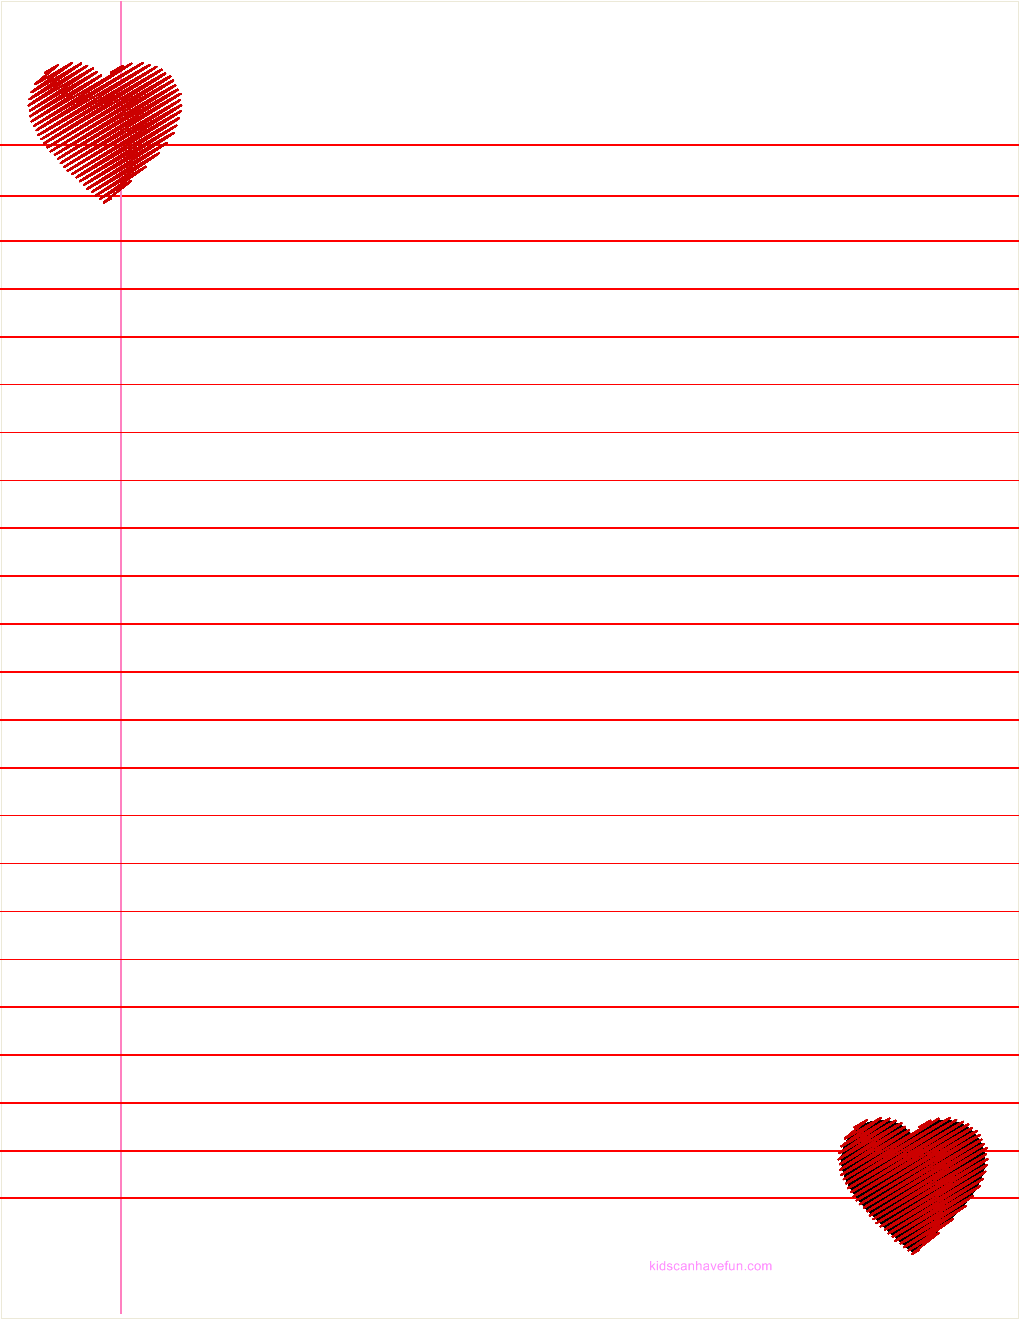 5 Images of Heart Writing Paper Printable